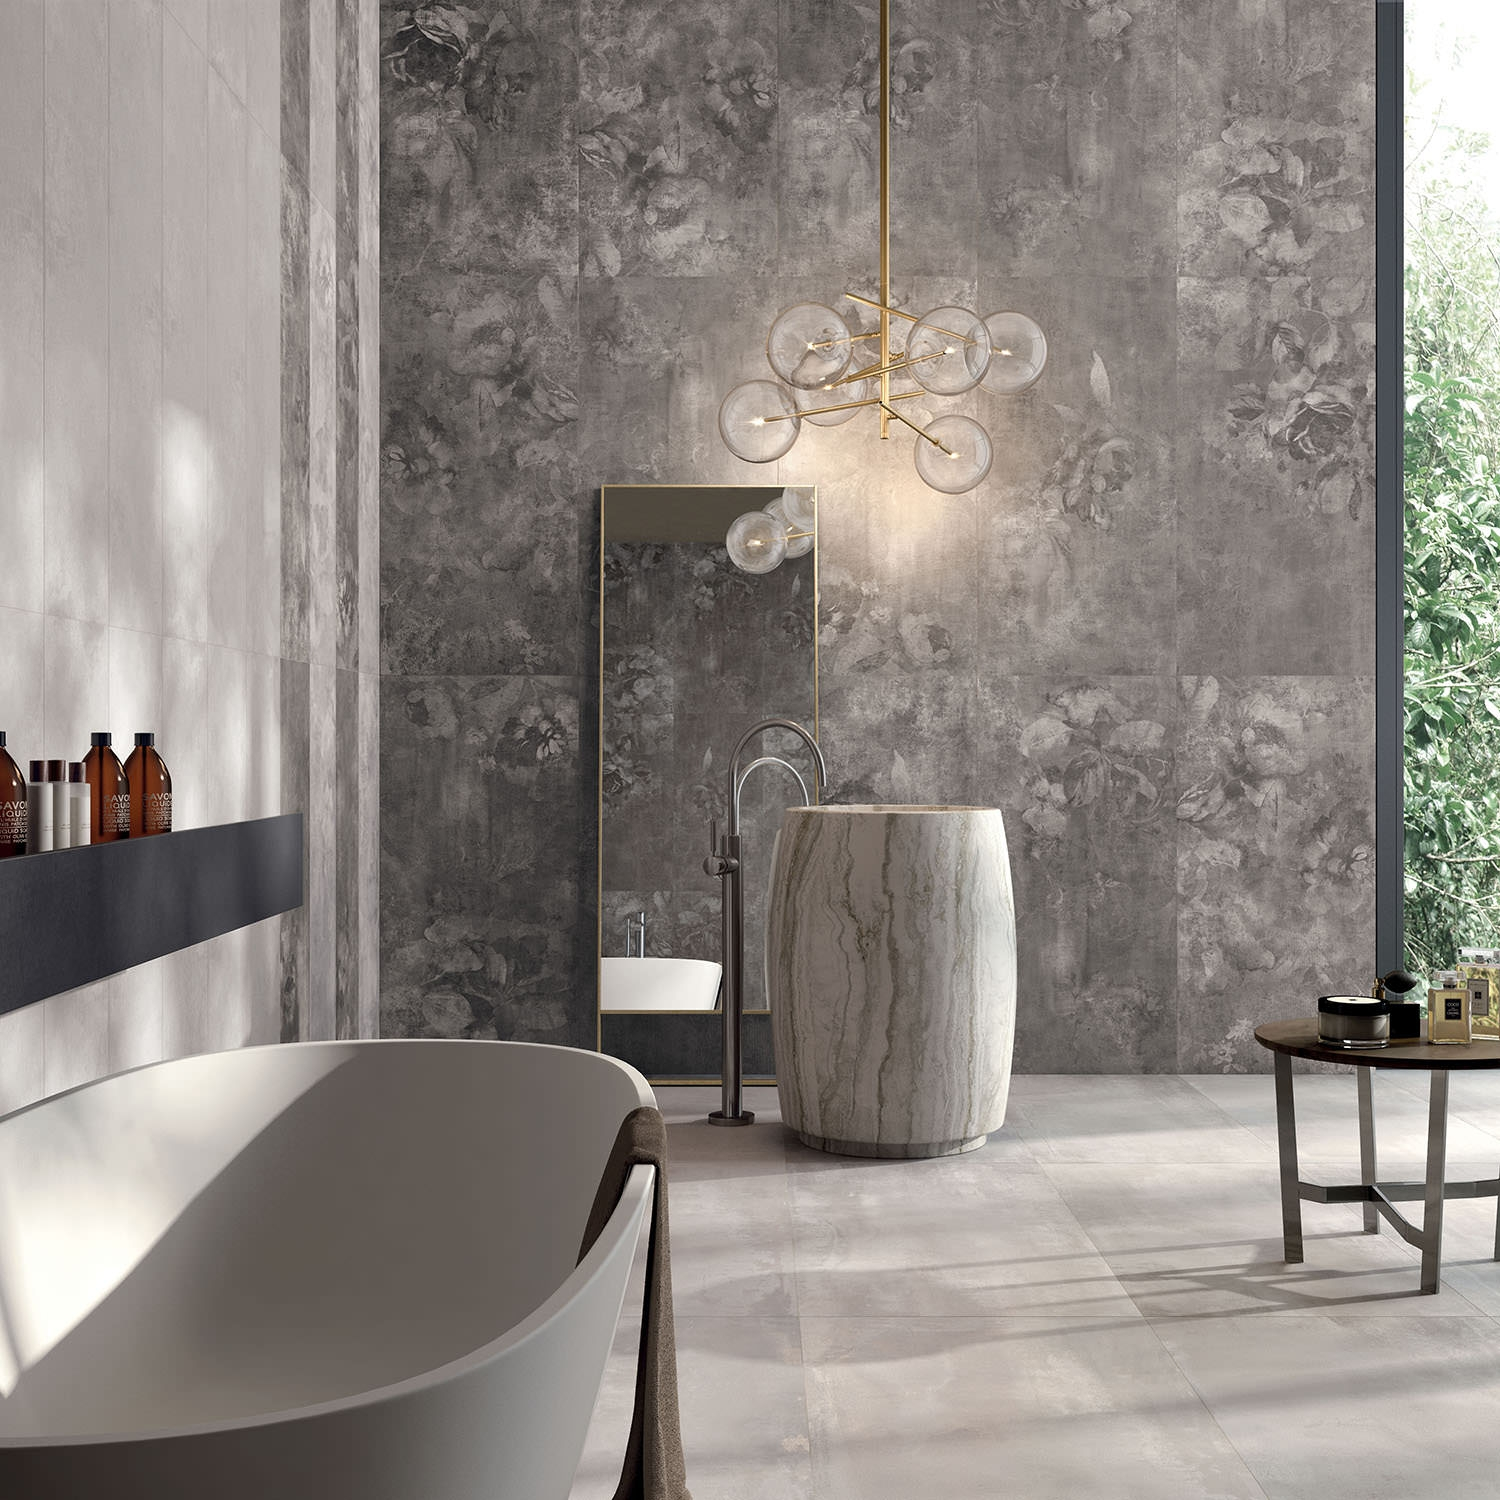 DO UP by ABK | Criver Ceramiche